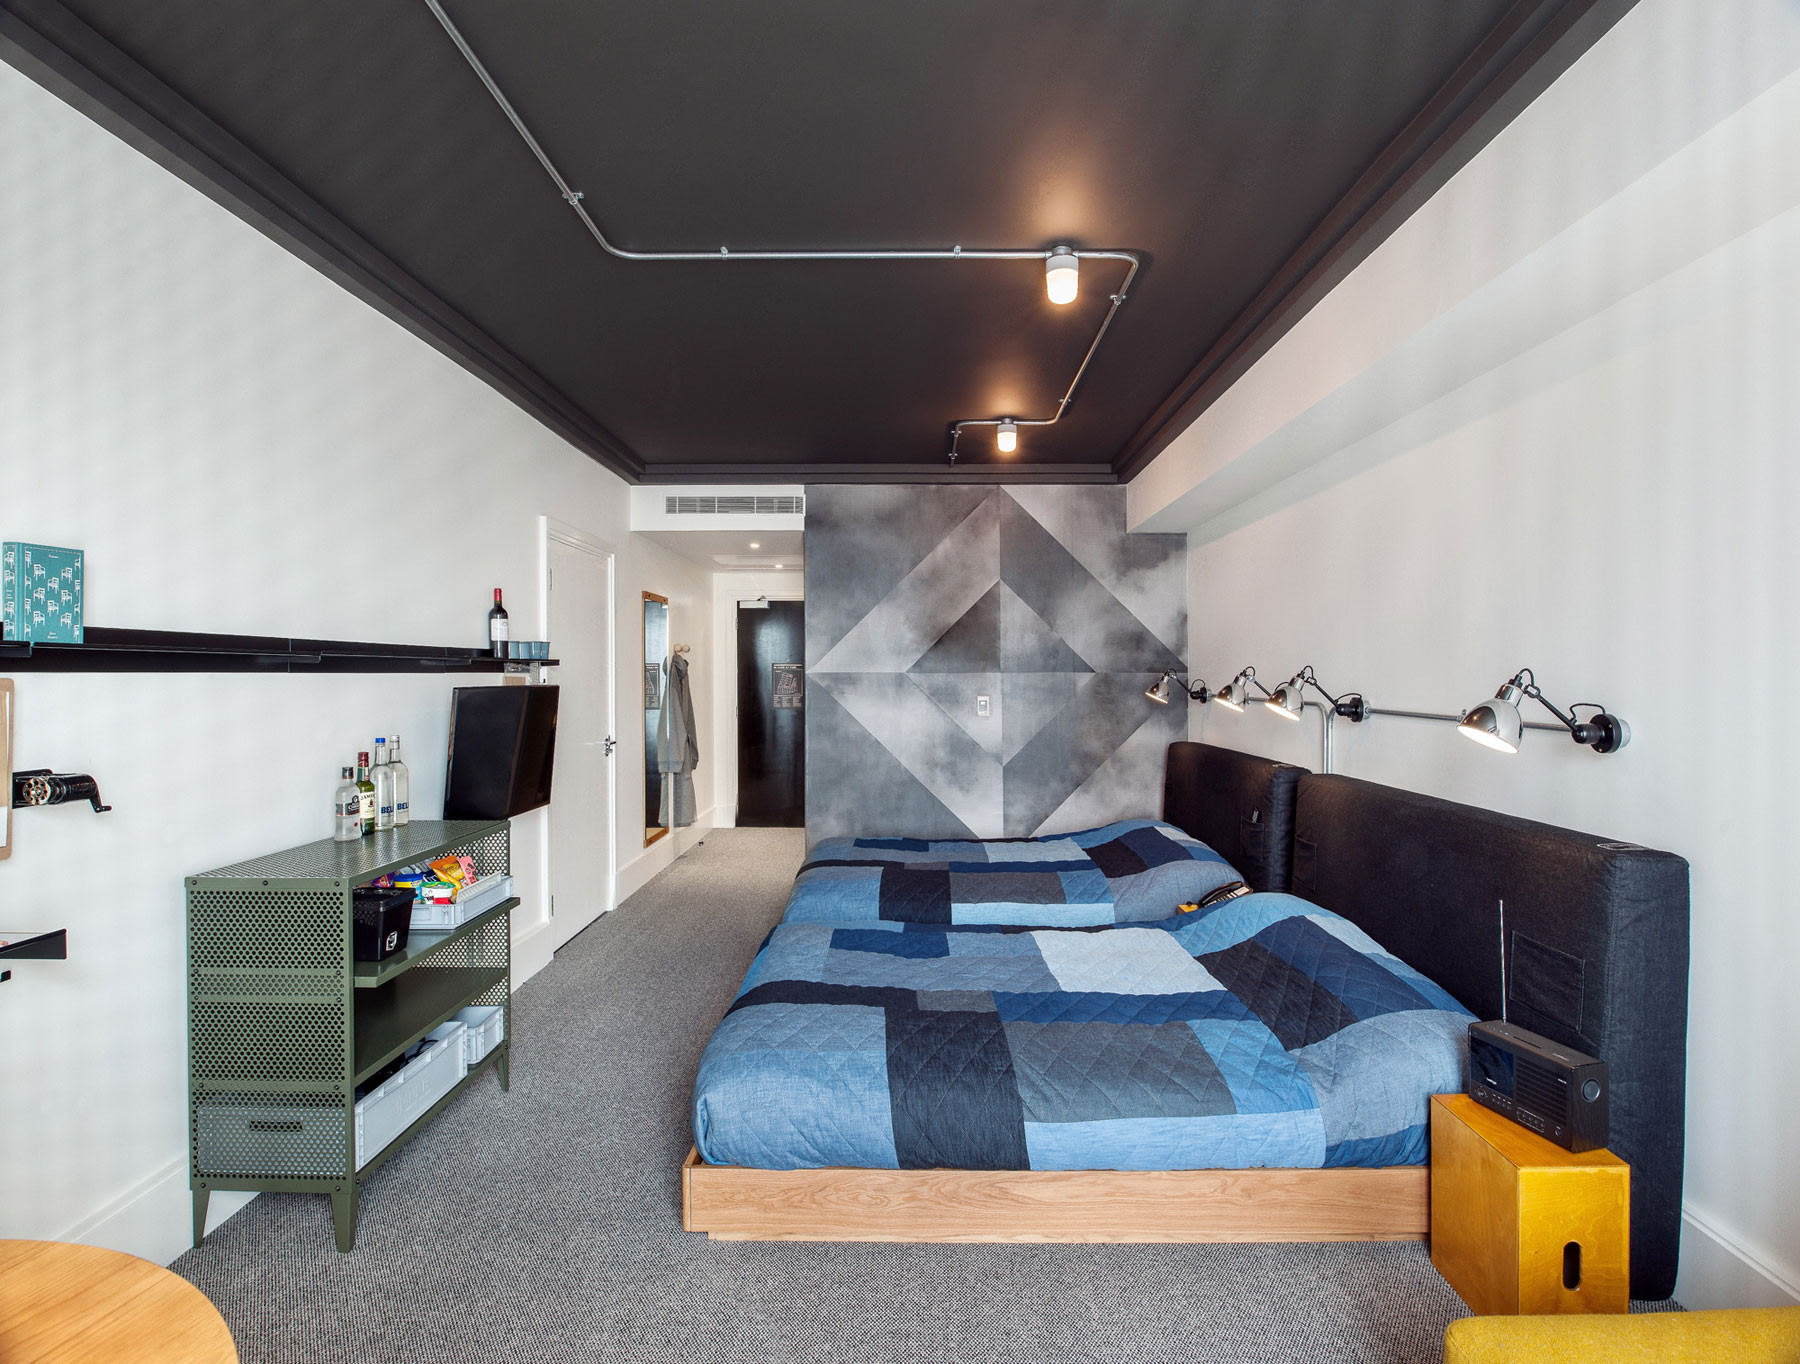 Ace hotel london universal design studio archdaily for Hotel design london